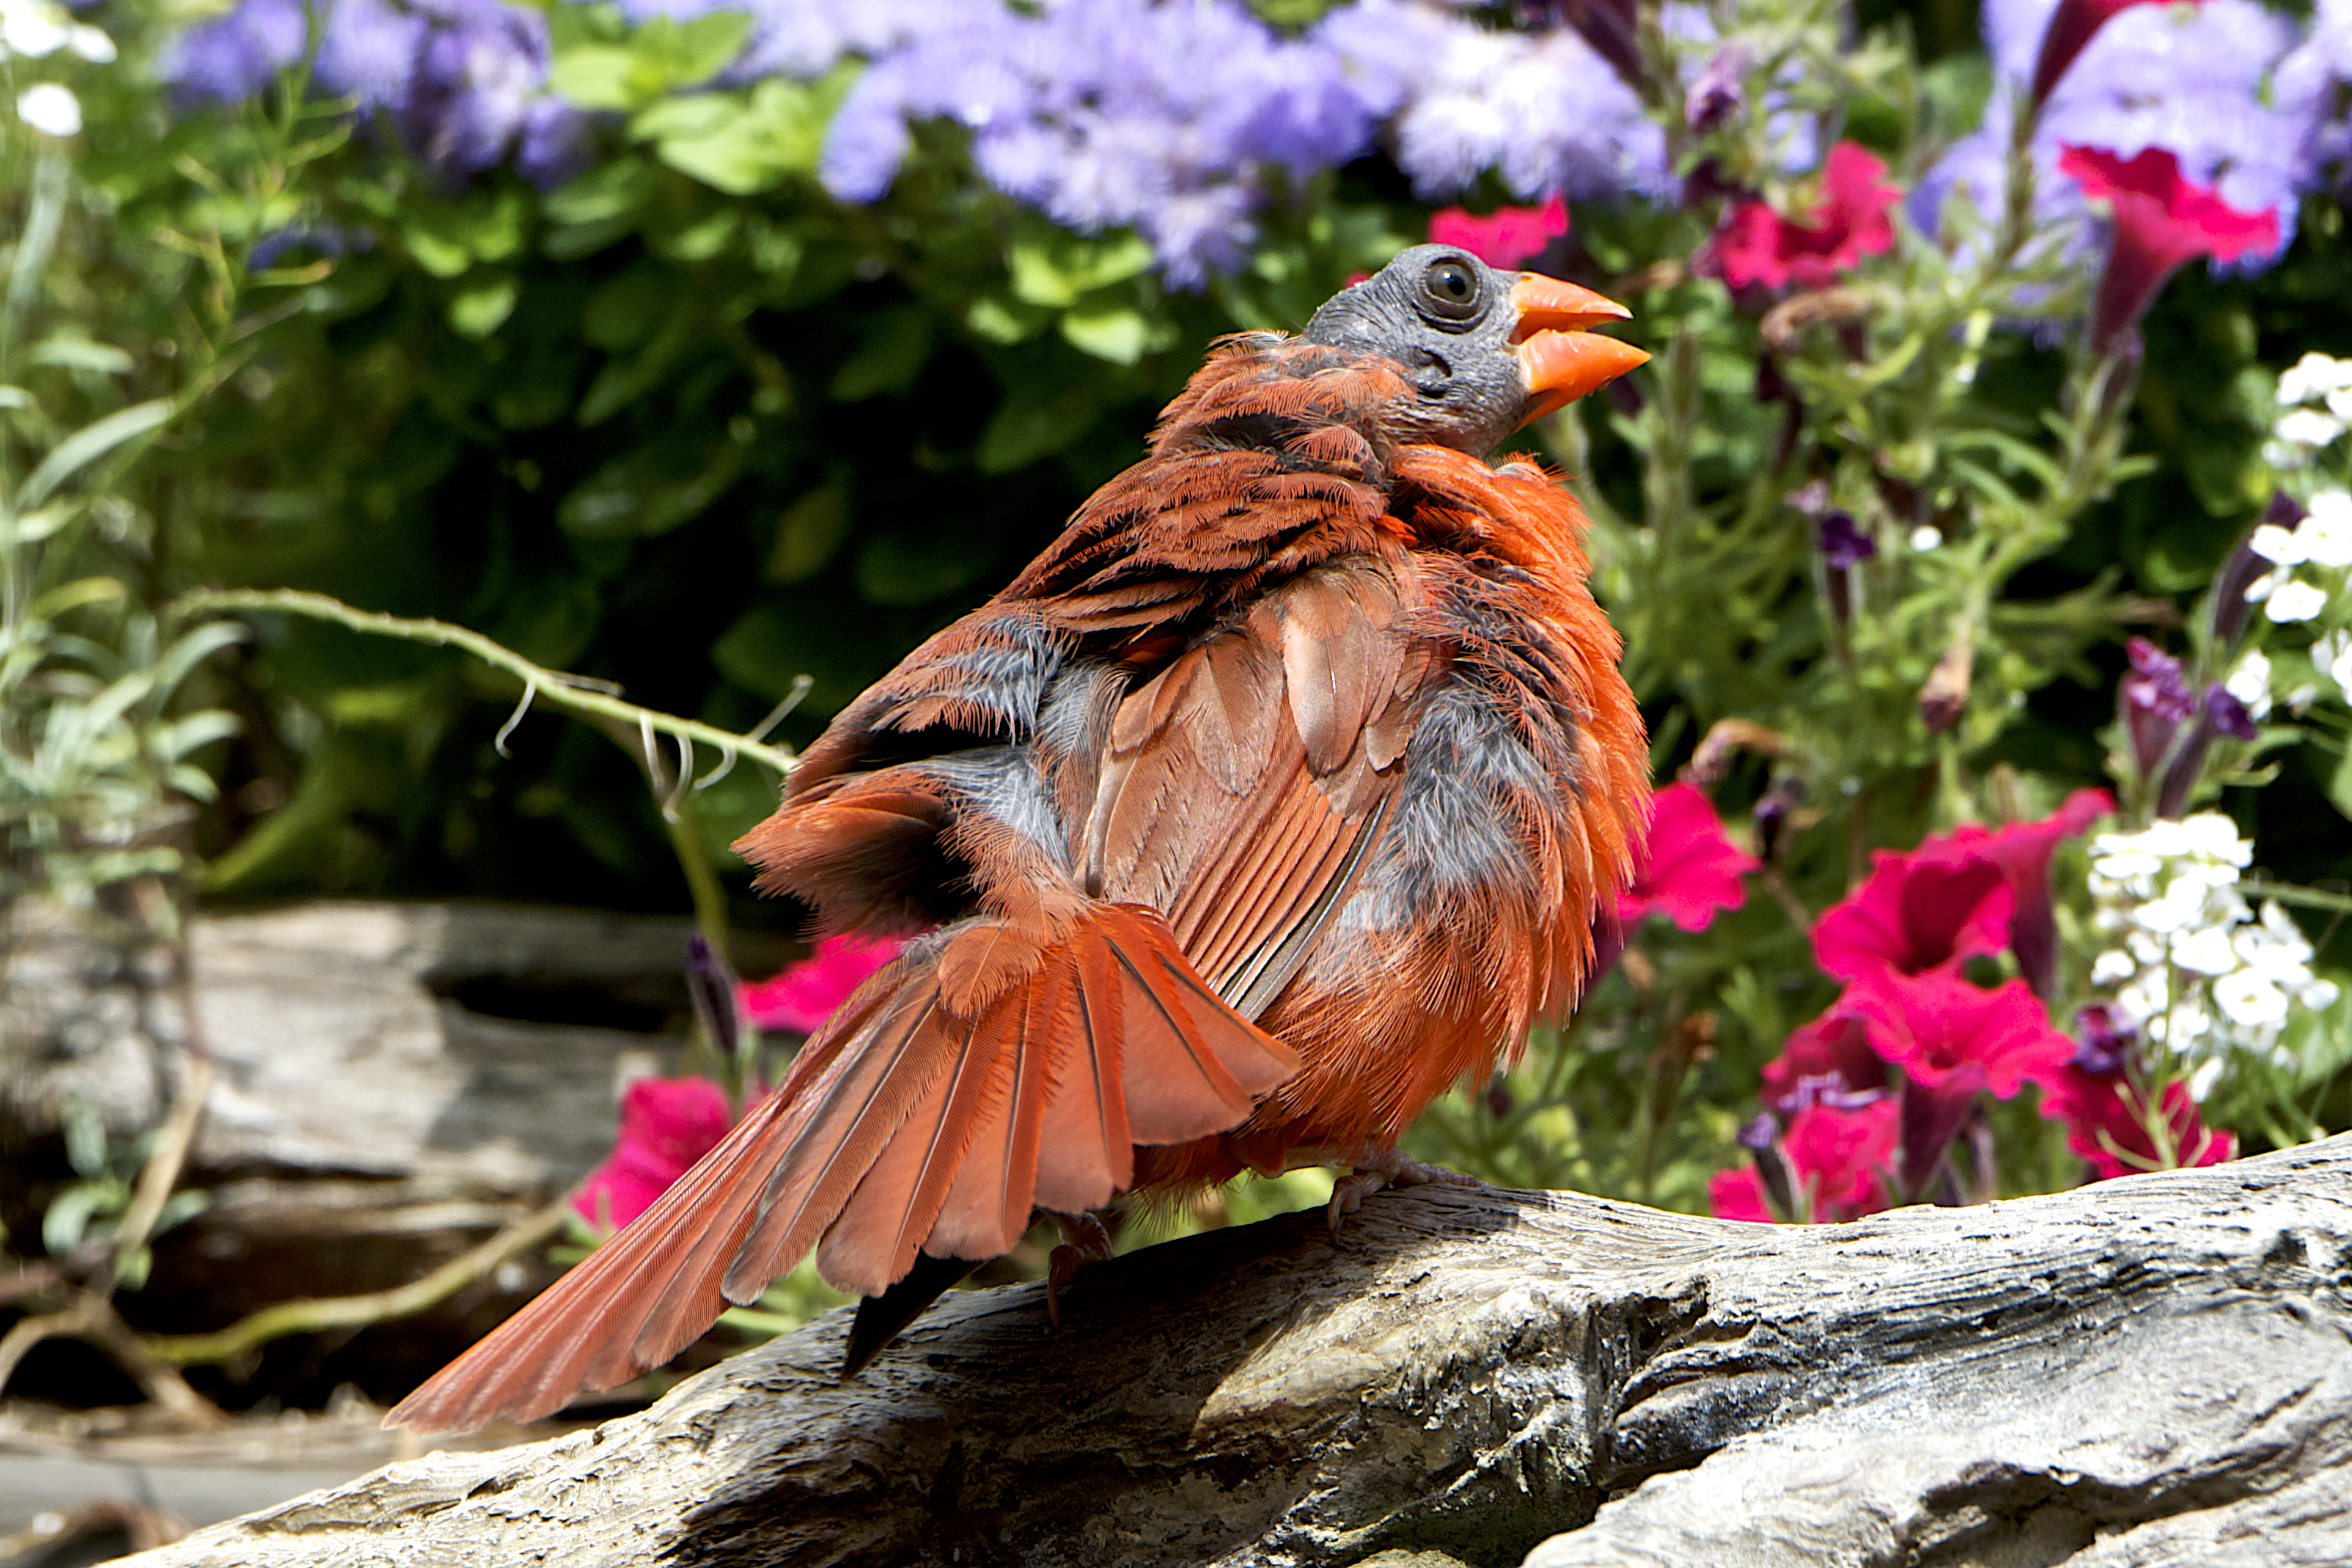 Northern Cardinal in molting process